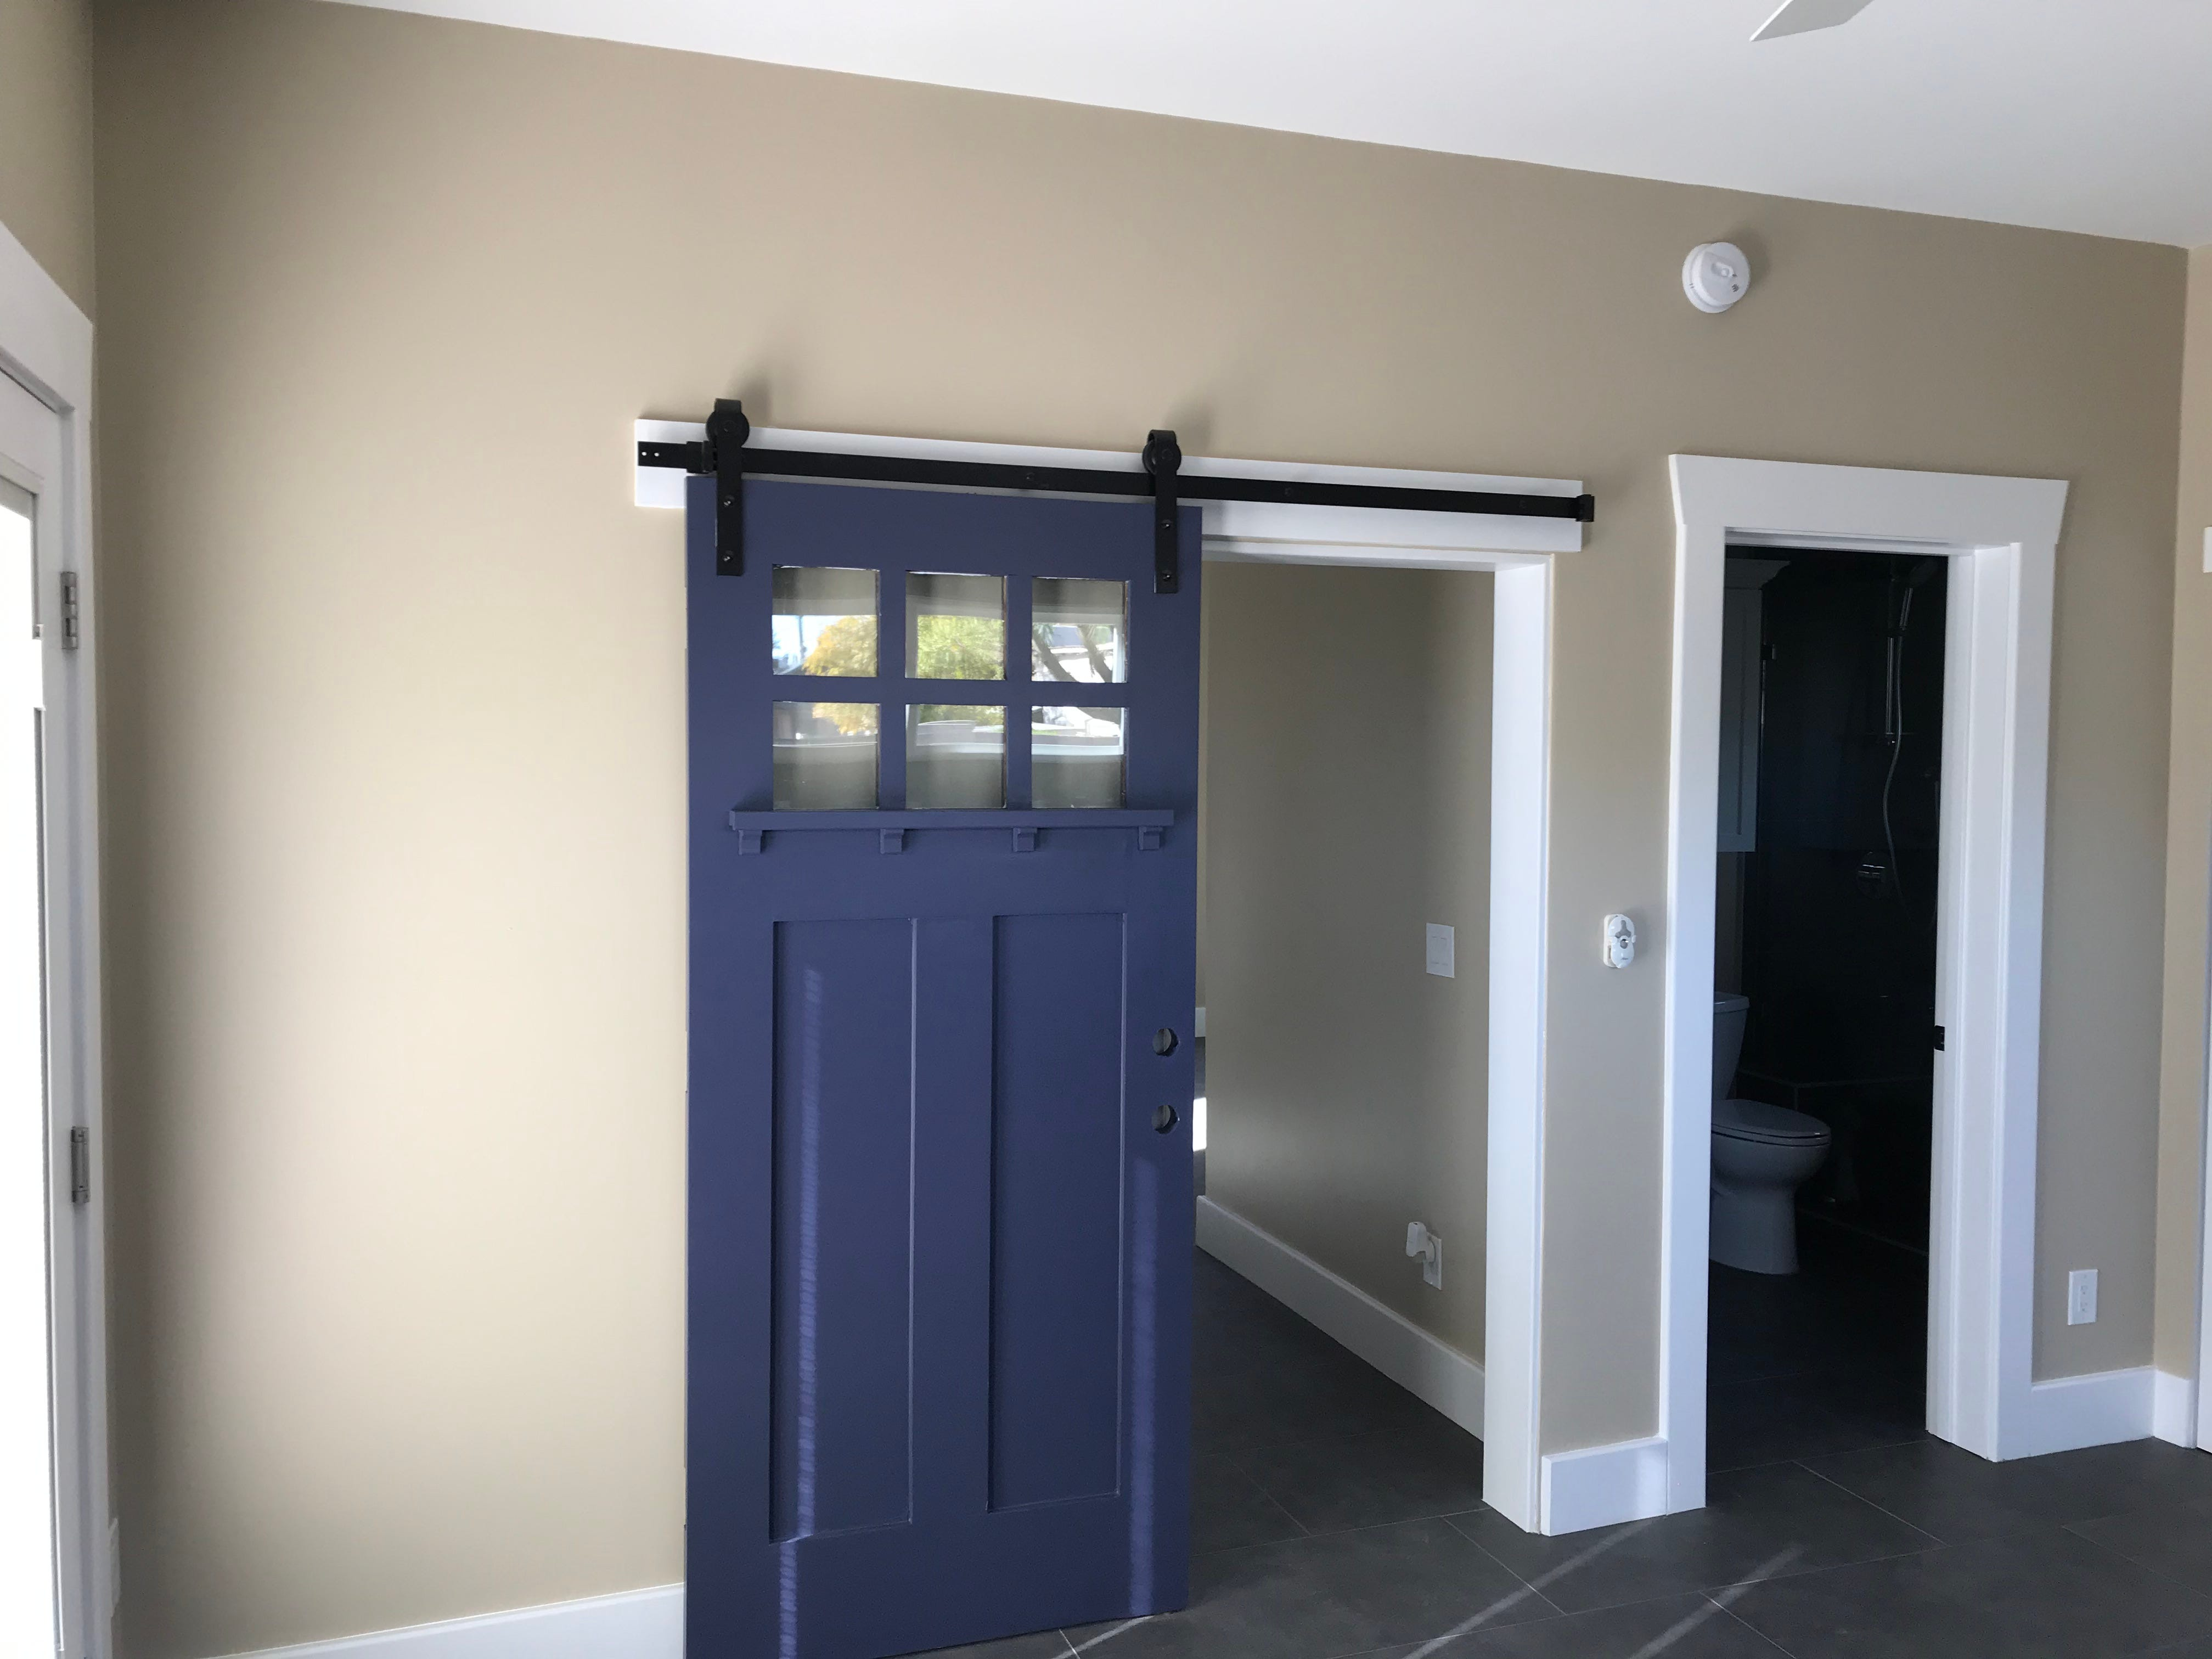 The front door of another home in the neighborhood was salvaged to provide privacy to the guest house bedroom.